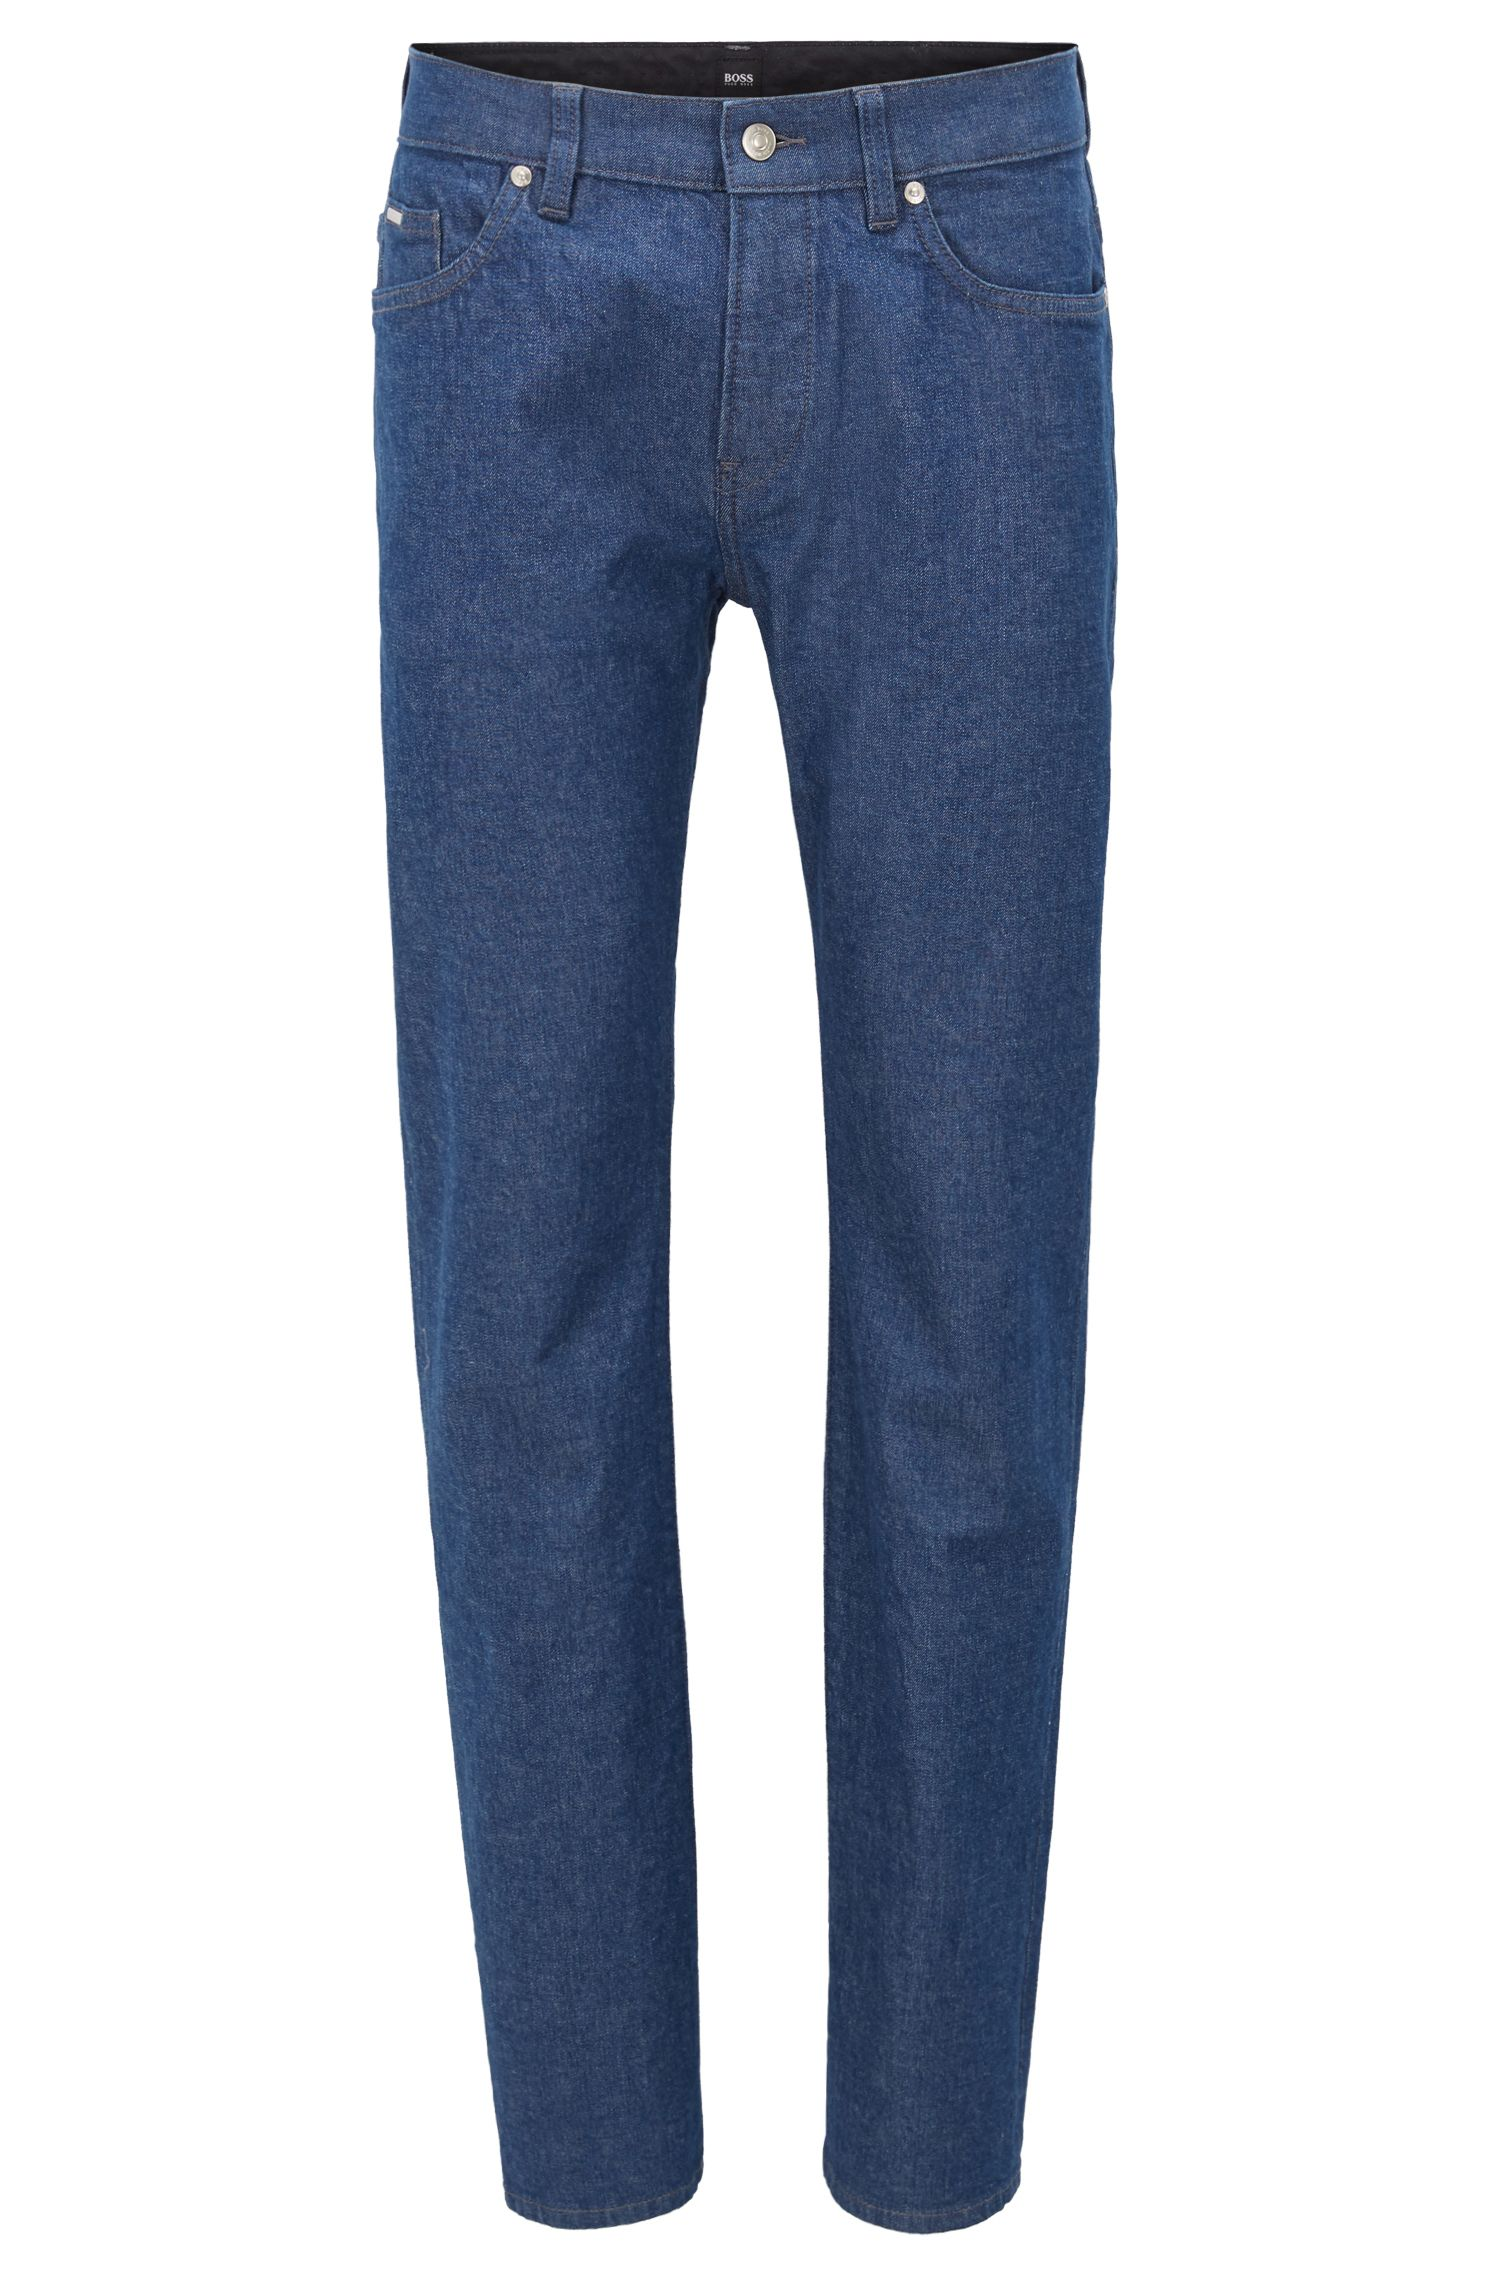 Jean Slim Fit en denim stretch stone-washed, Bleu foncé